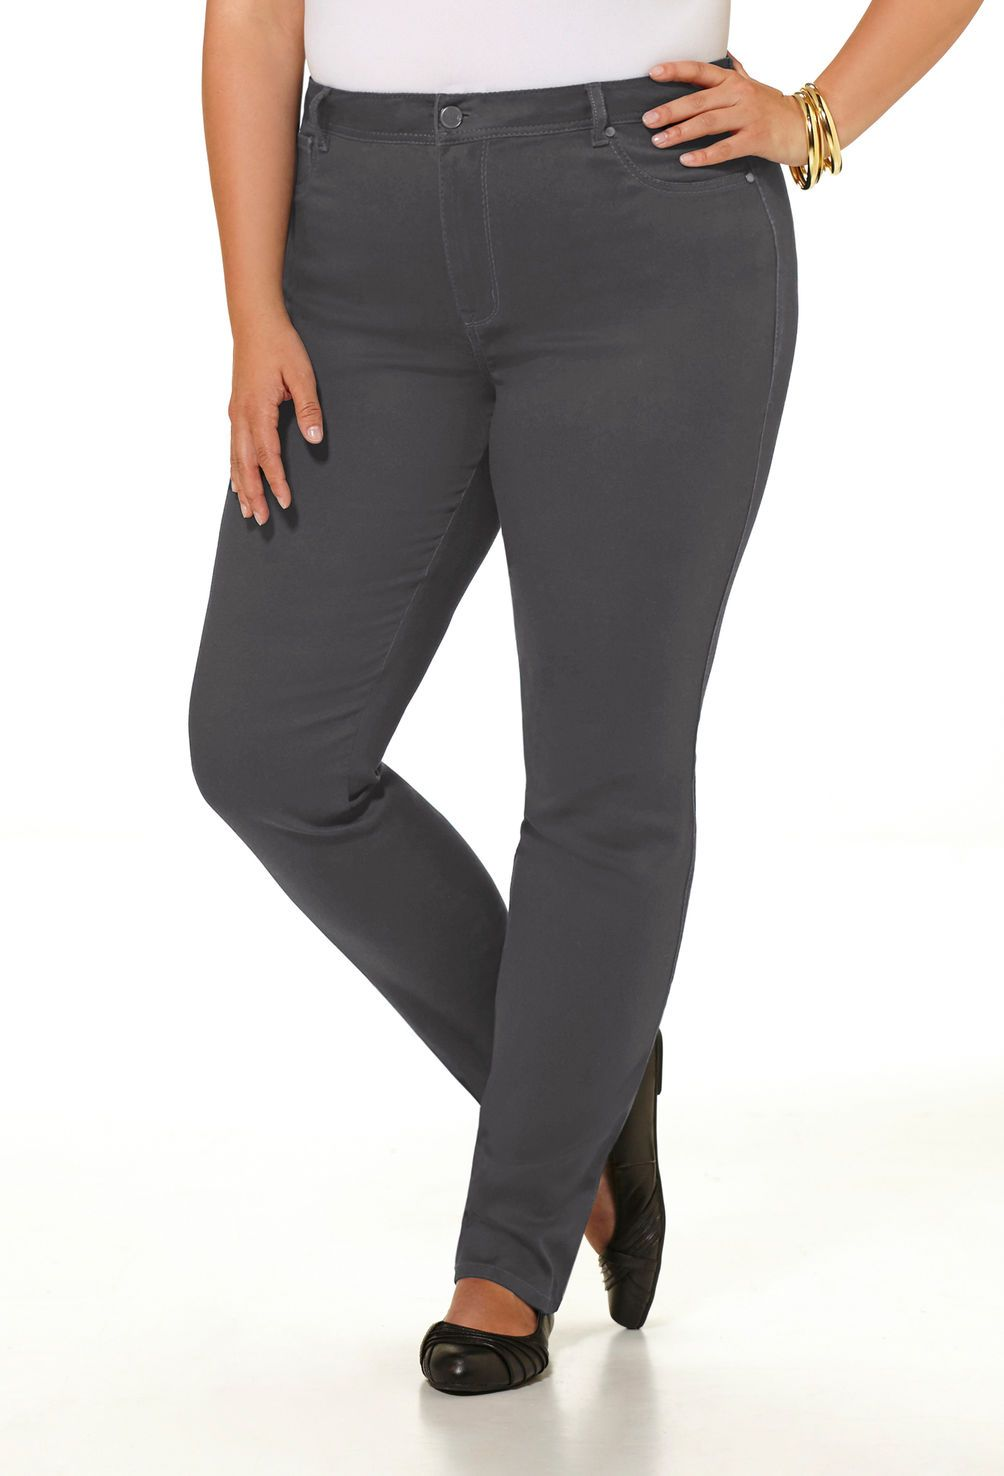 bfc81f8815076 Shop new fall plus size skinny jeans in great colors like the plus size  Butter Denim Legging Jean (Dark Grey) available online at avenue.com. Avenue  Store